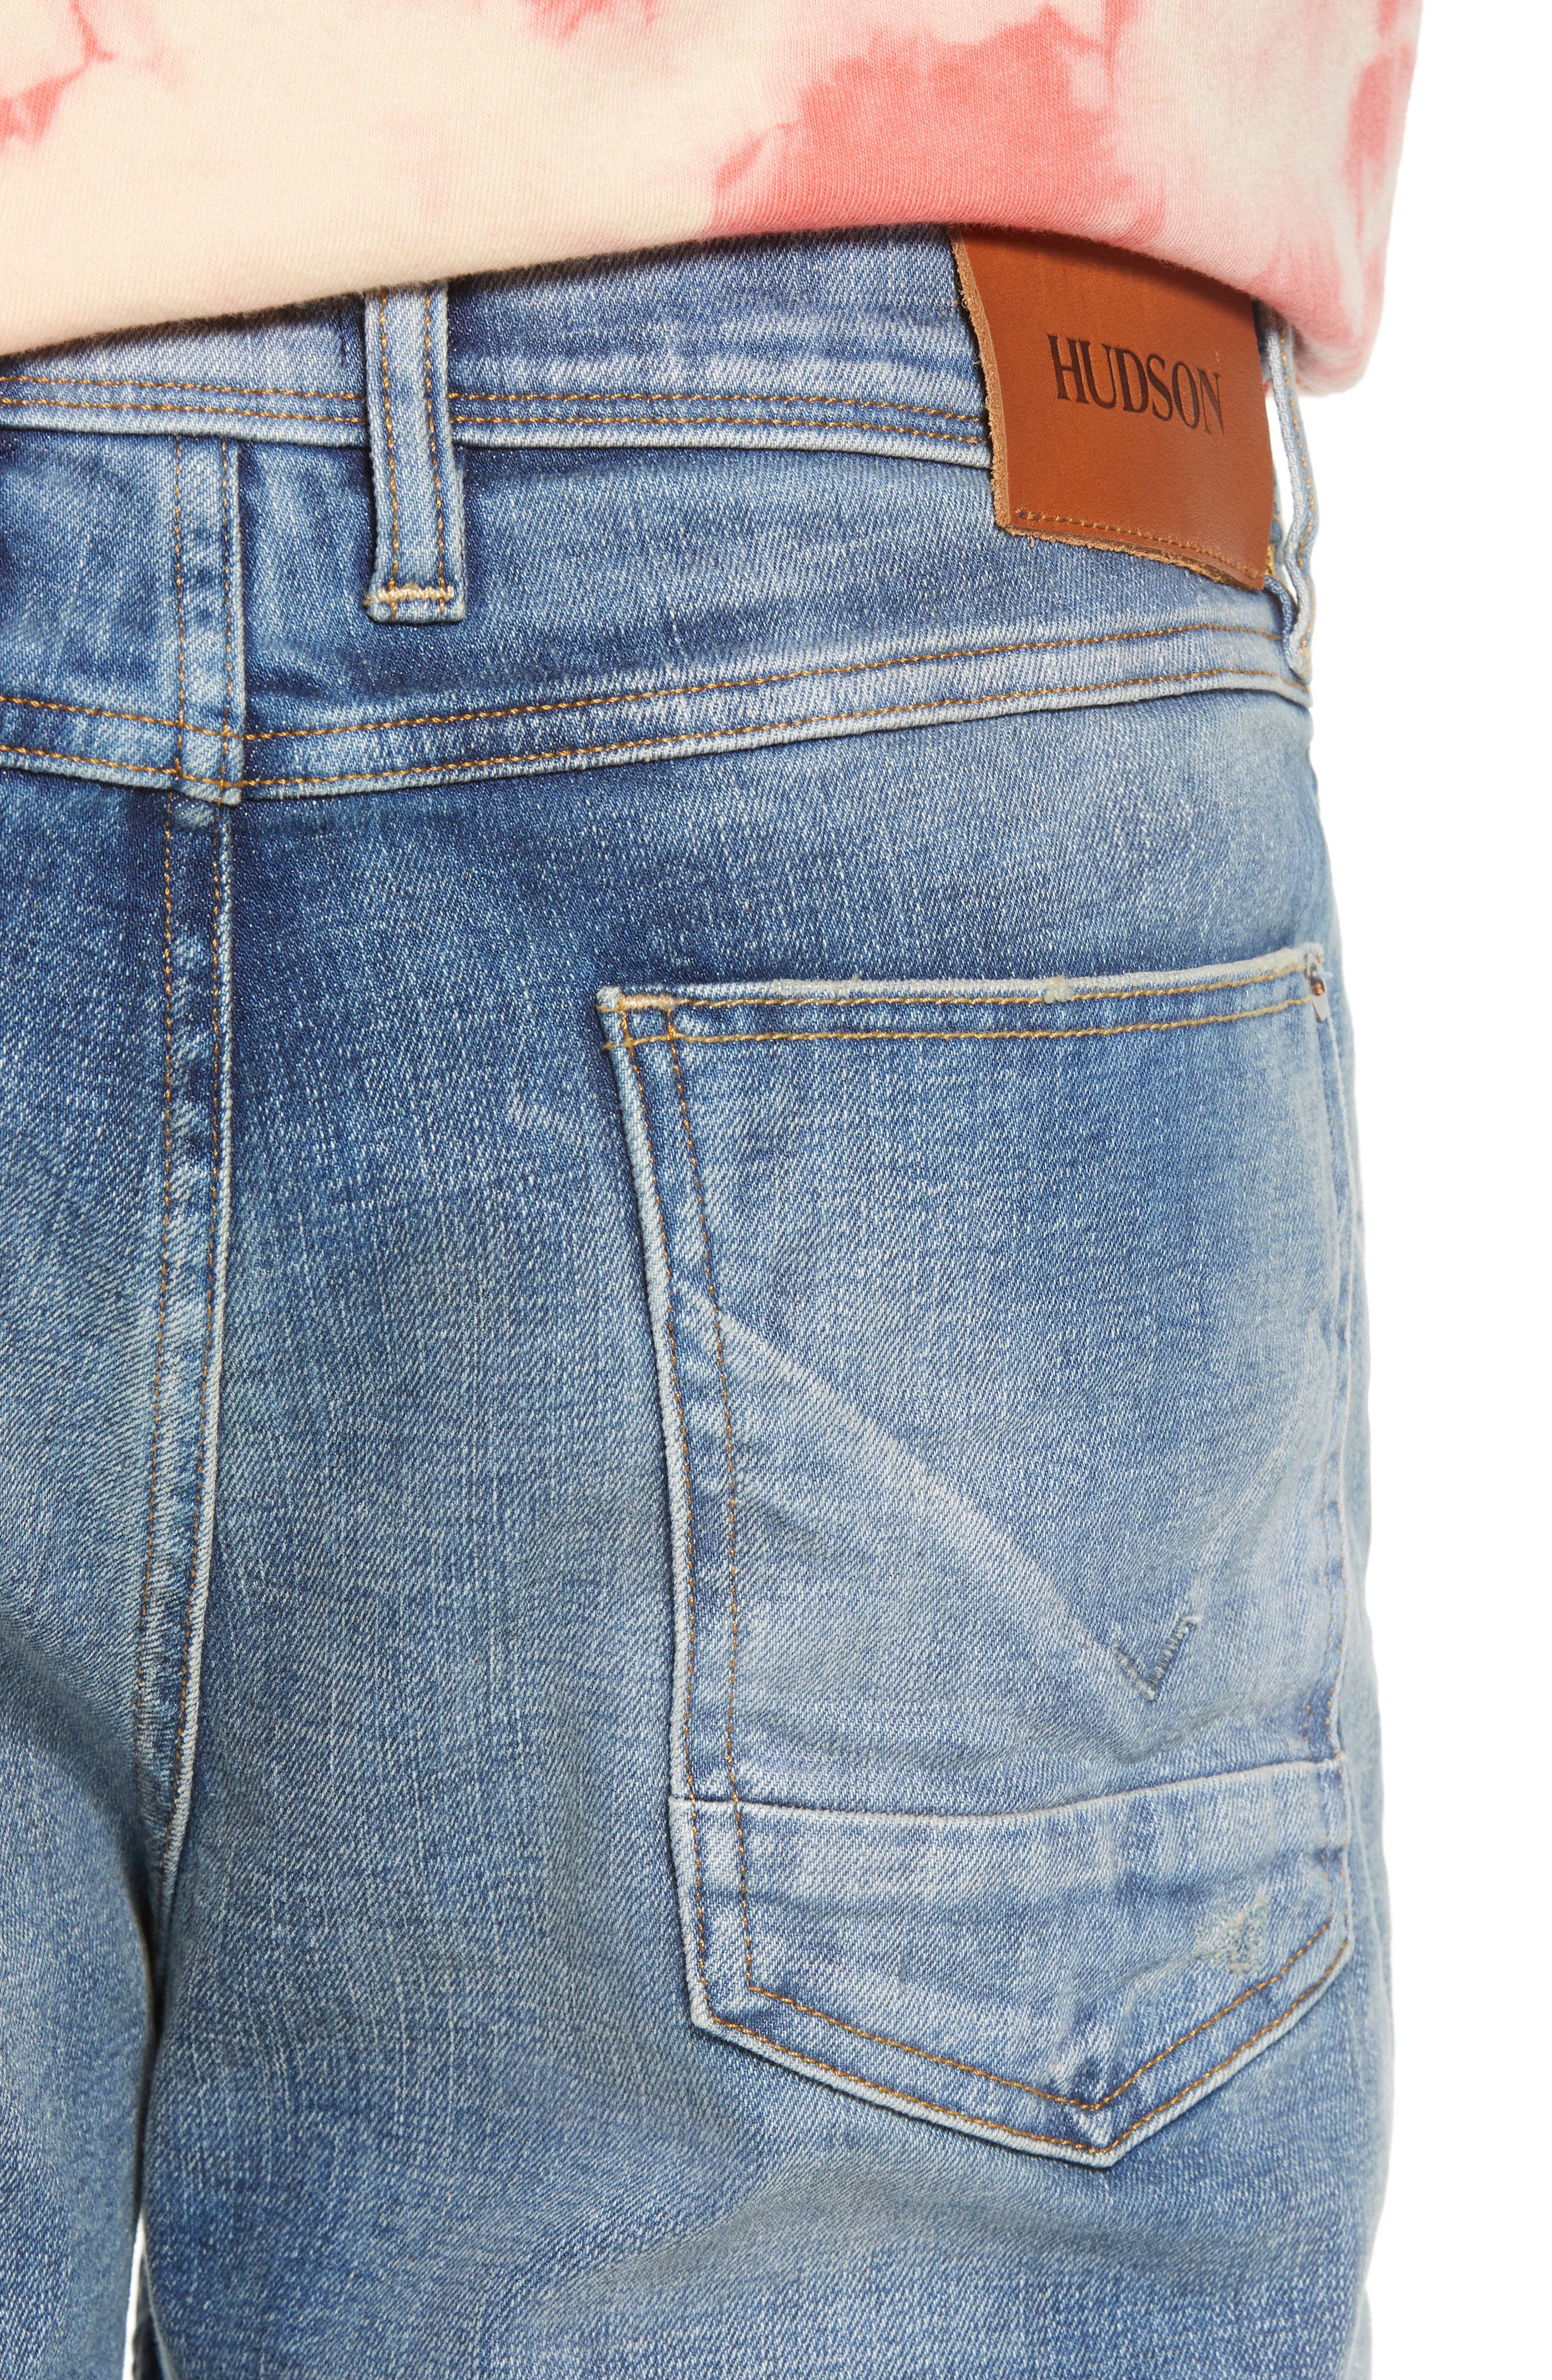 Sartor Slouchy Skinny Fit Jeans,                             Alternate thumbnail 4, color,                             429